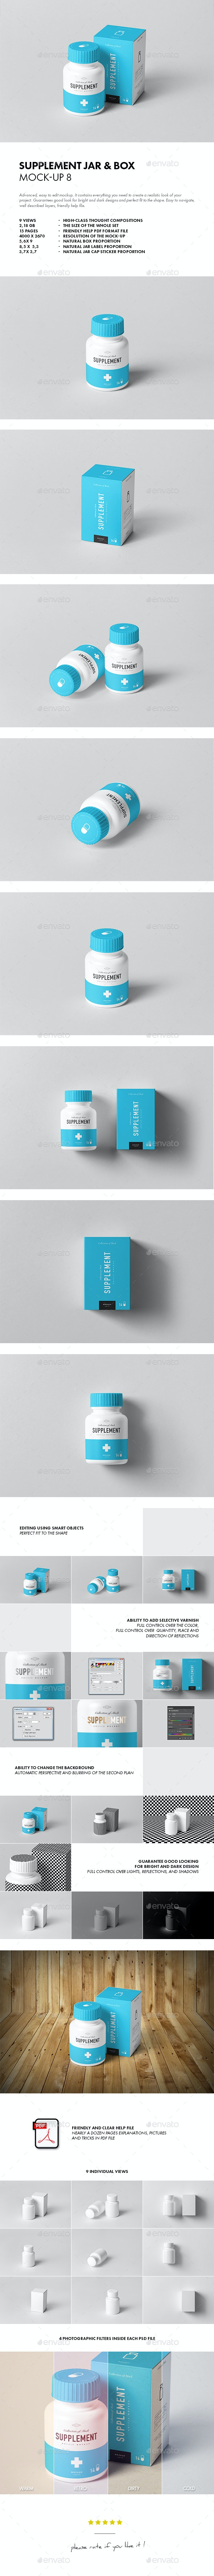 Supplement Jar & Box Mock-up 8 - Miscellaneous Packaging